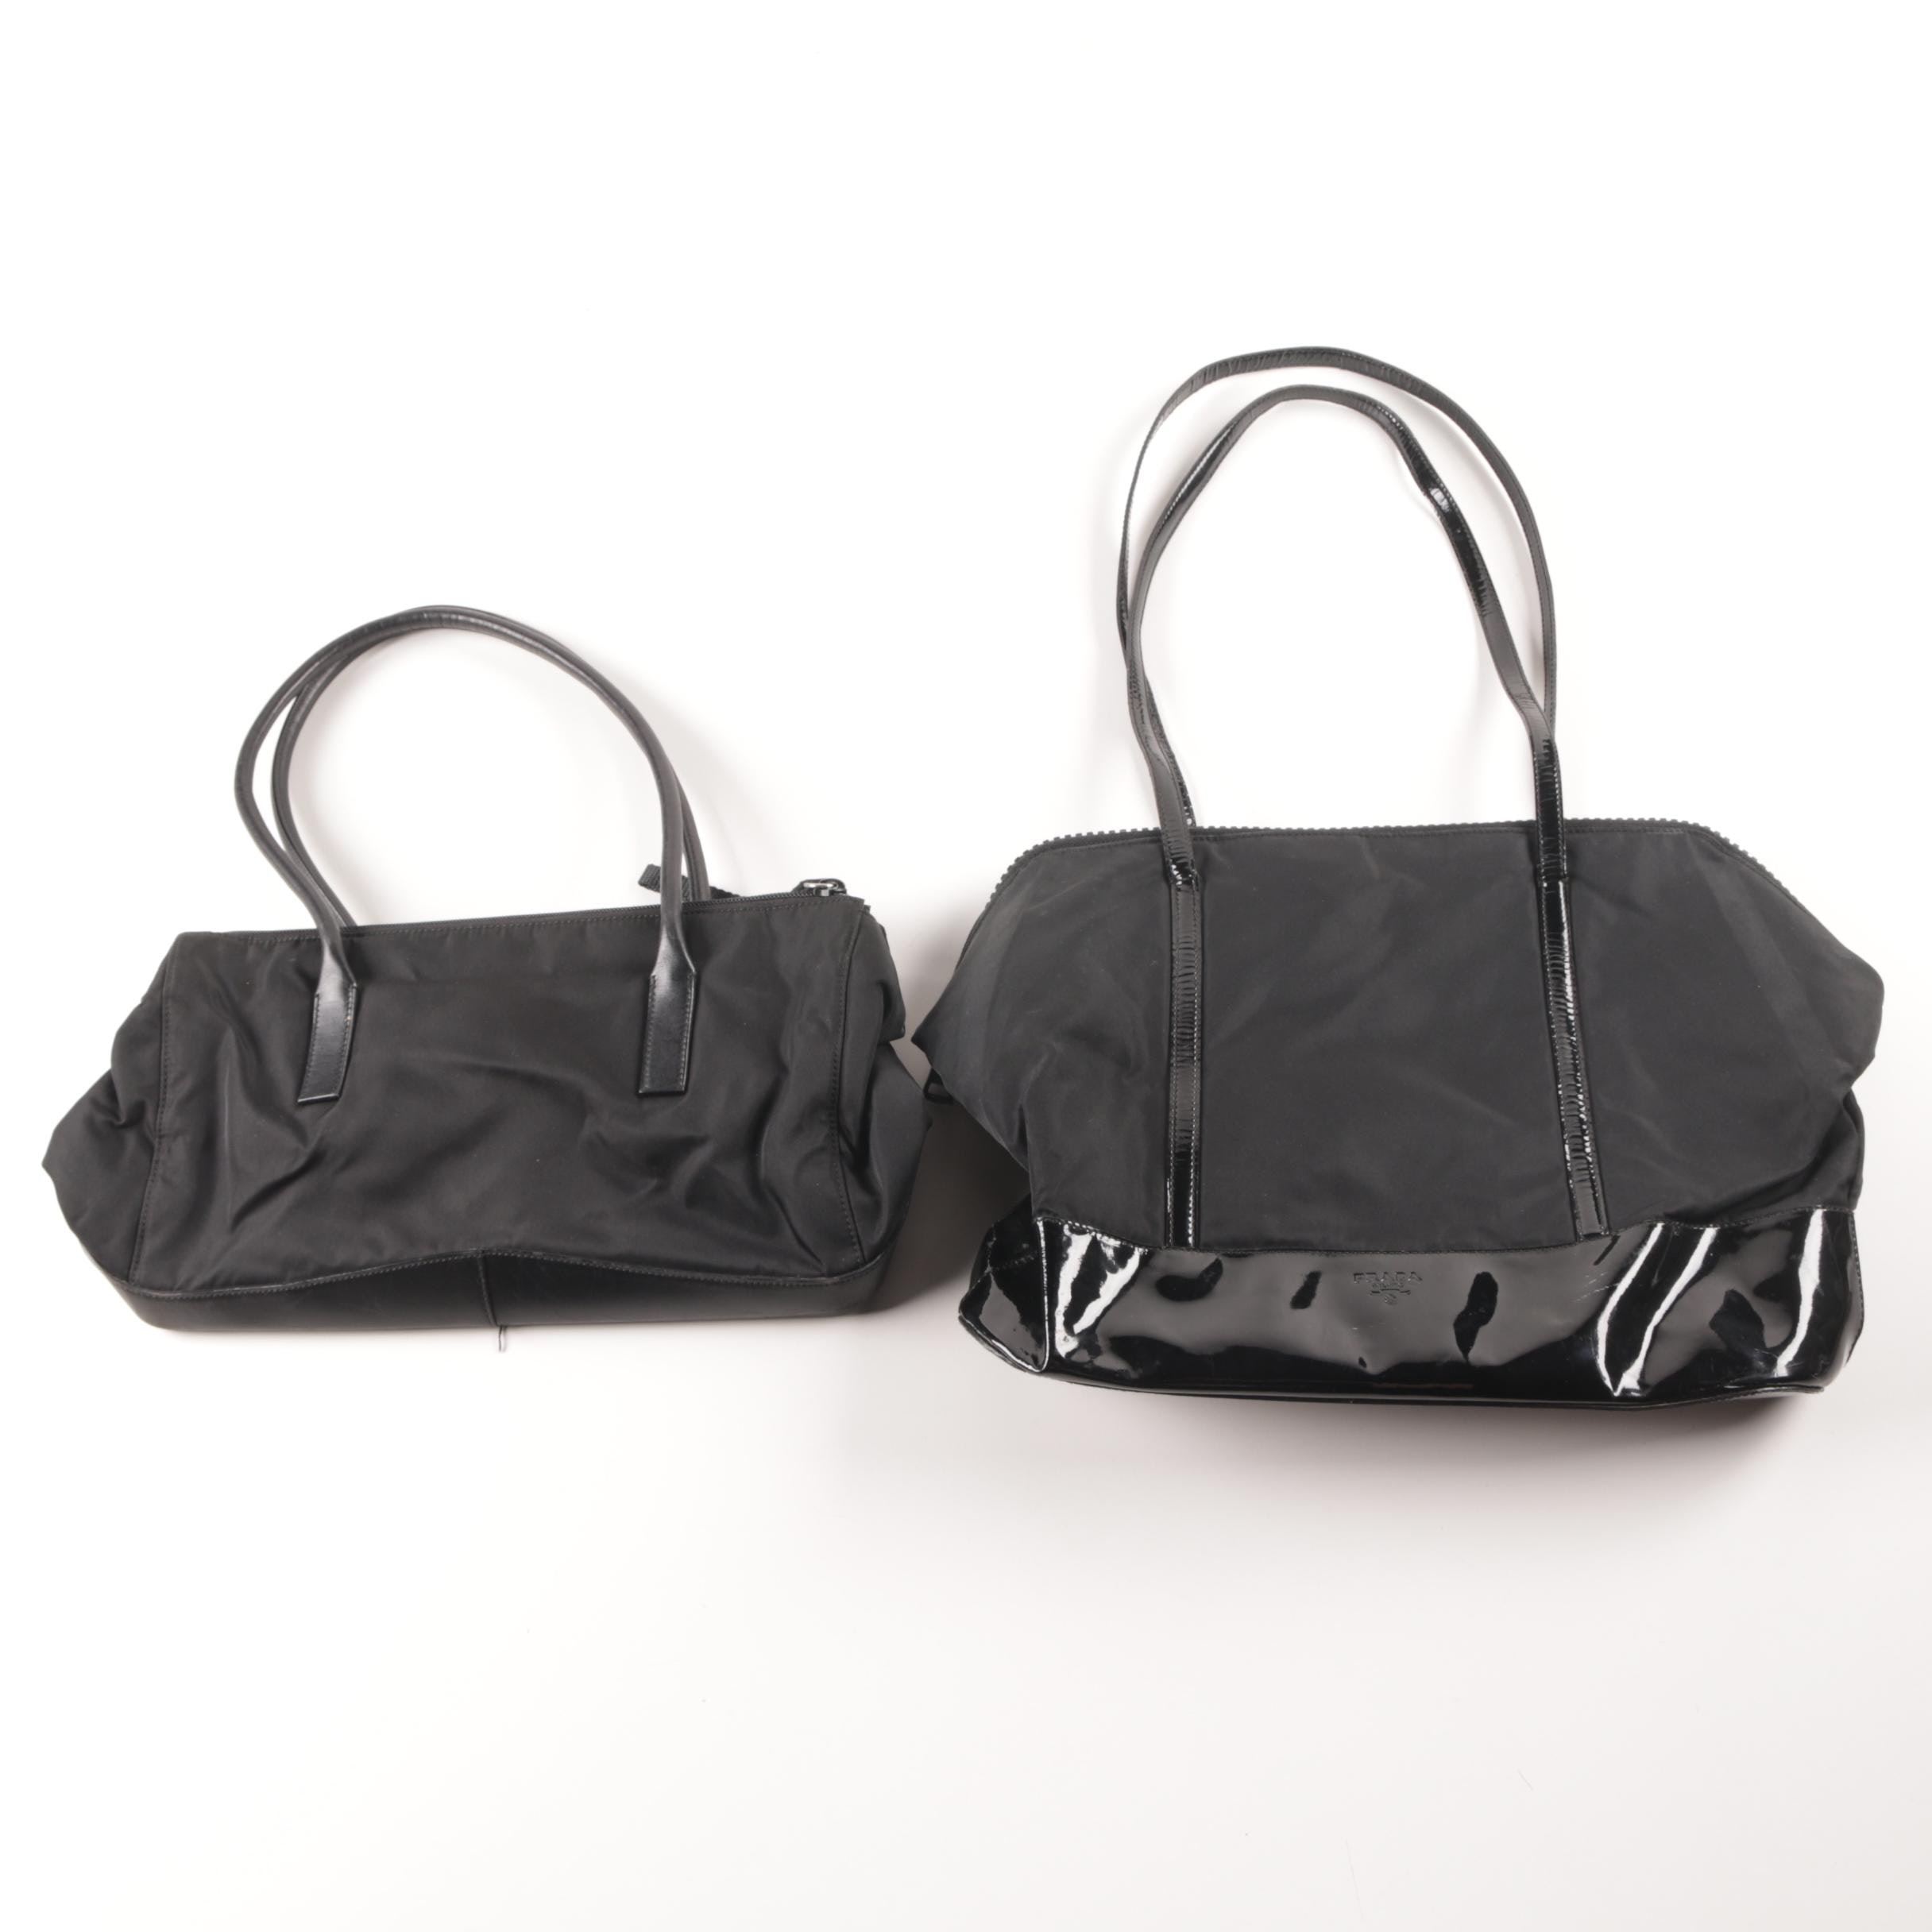 Prada Black Nylon Bags